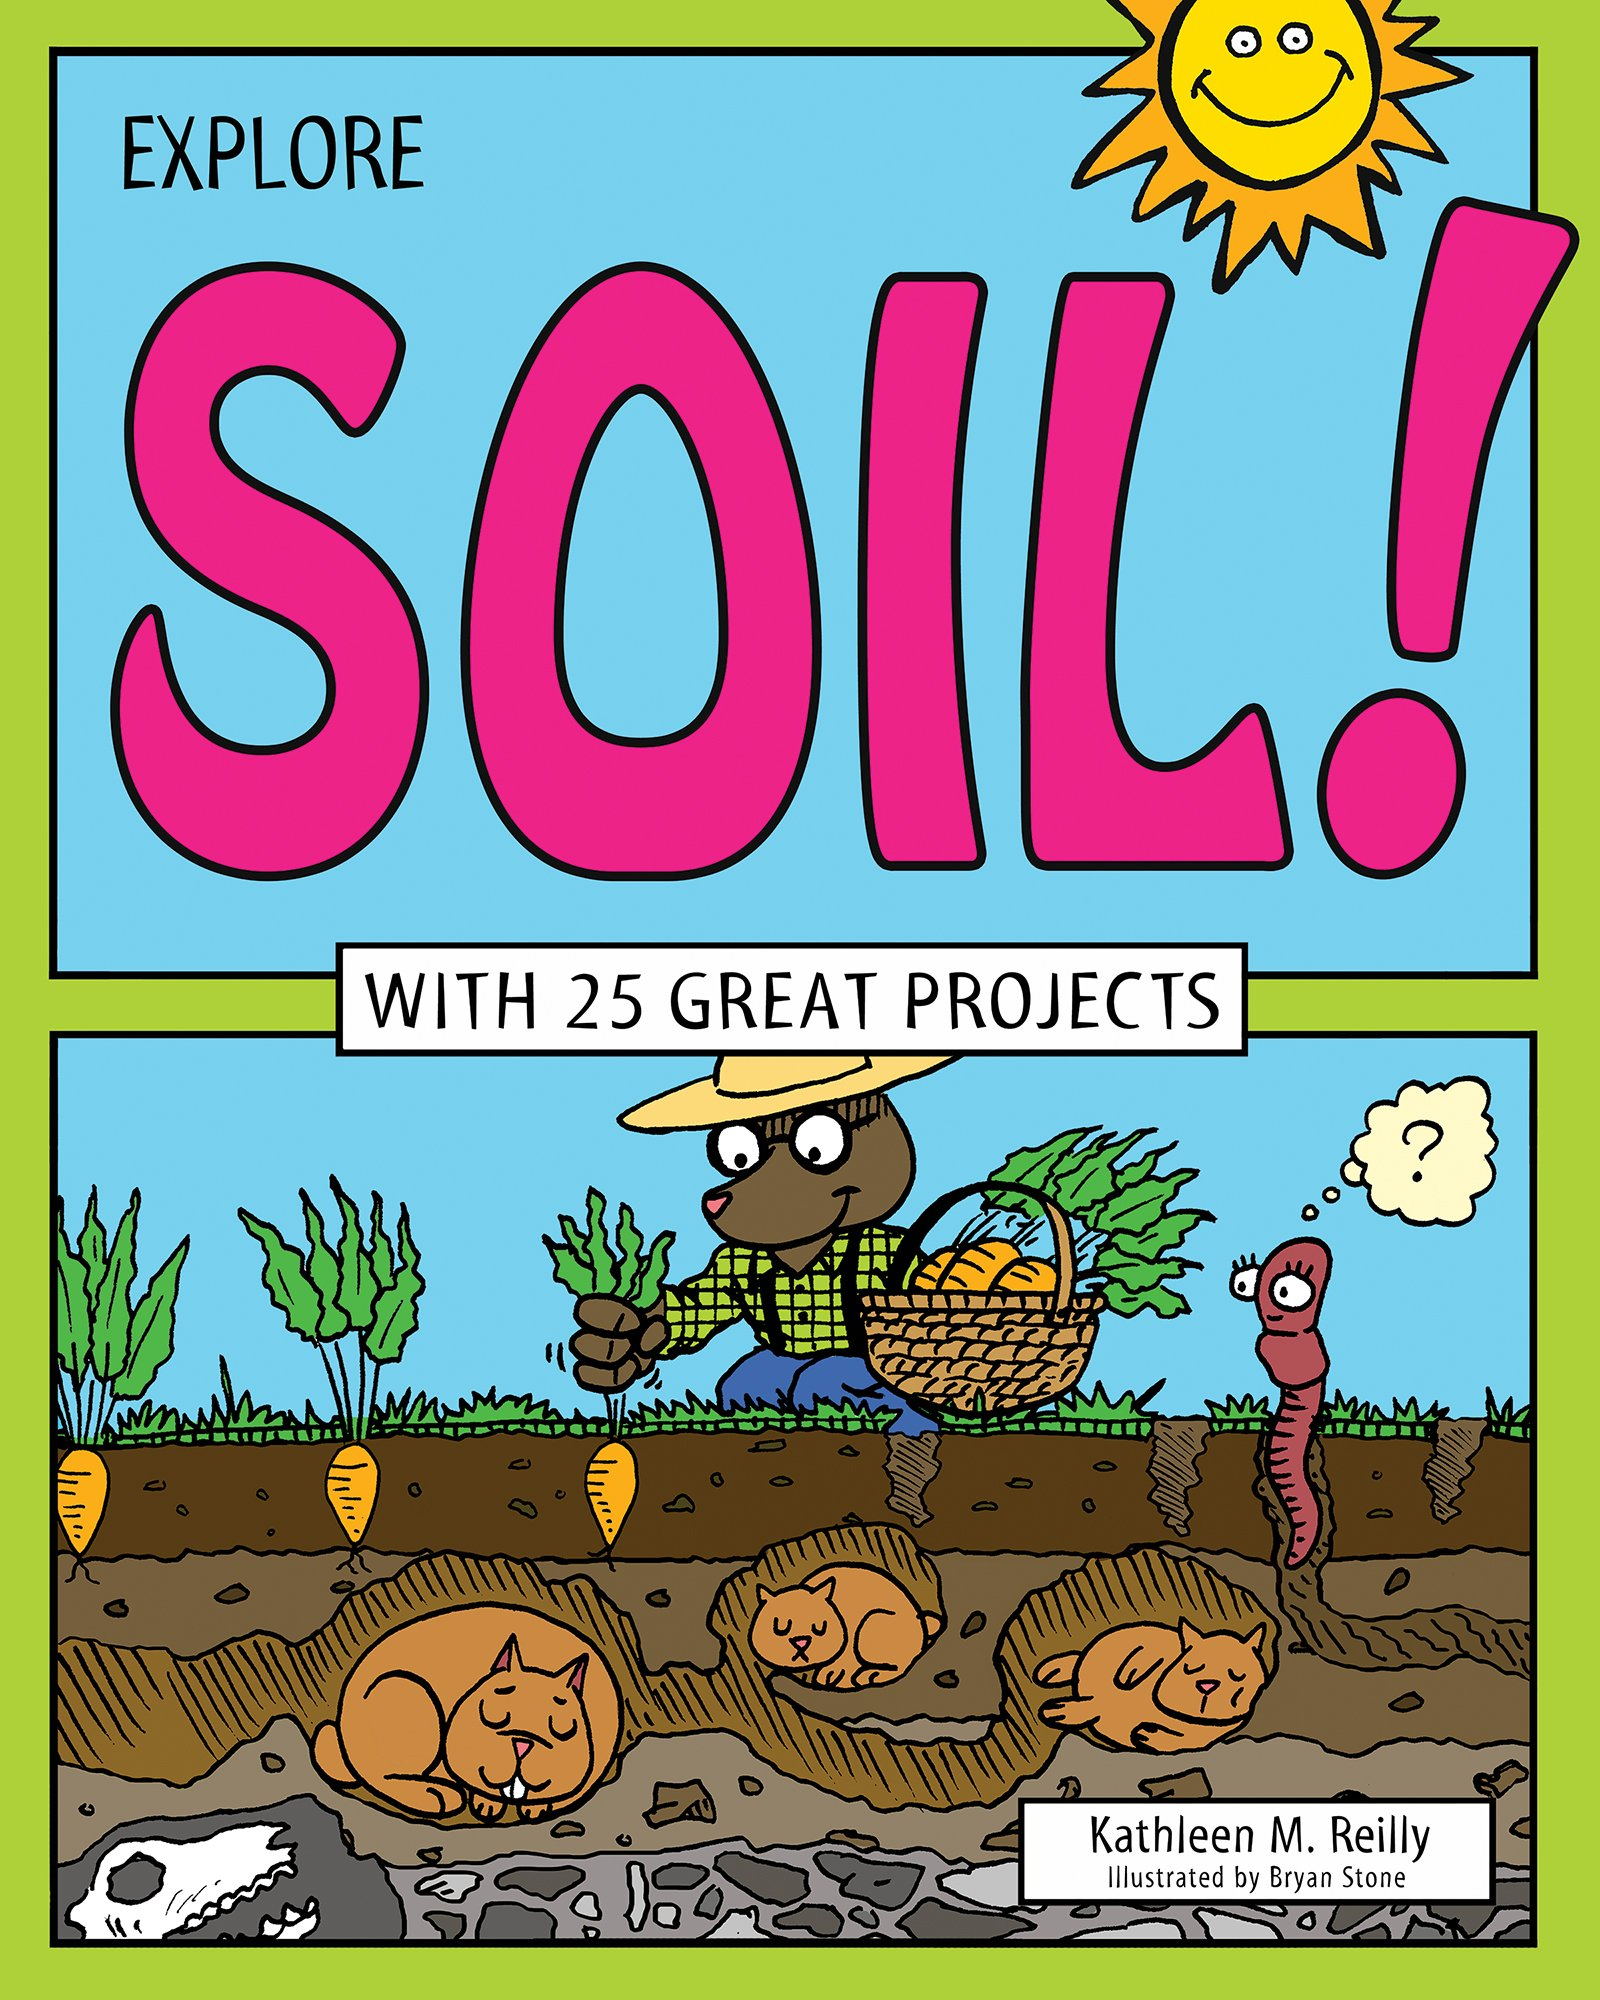 Explore Soil!: With 25 Great Projects (Explore Your World)